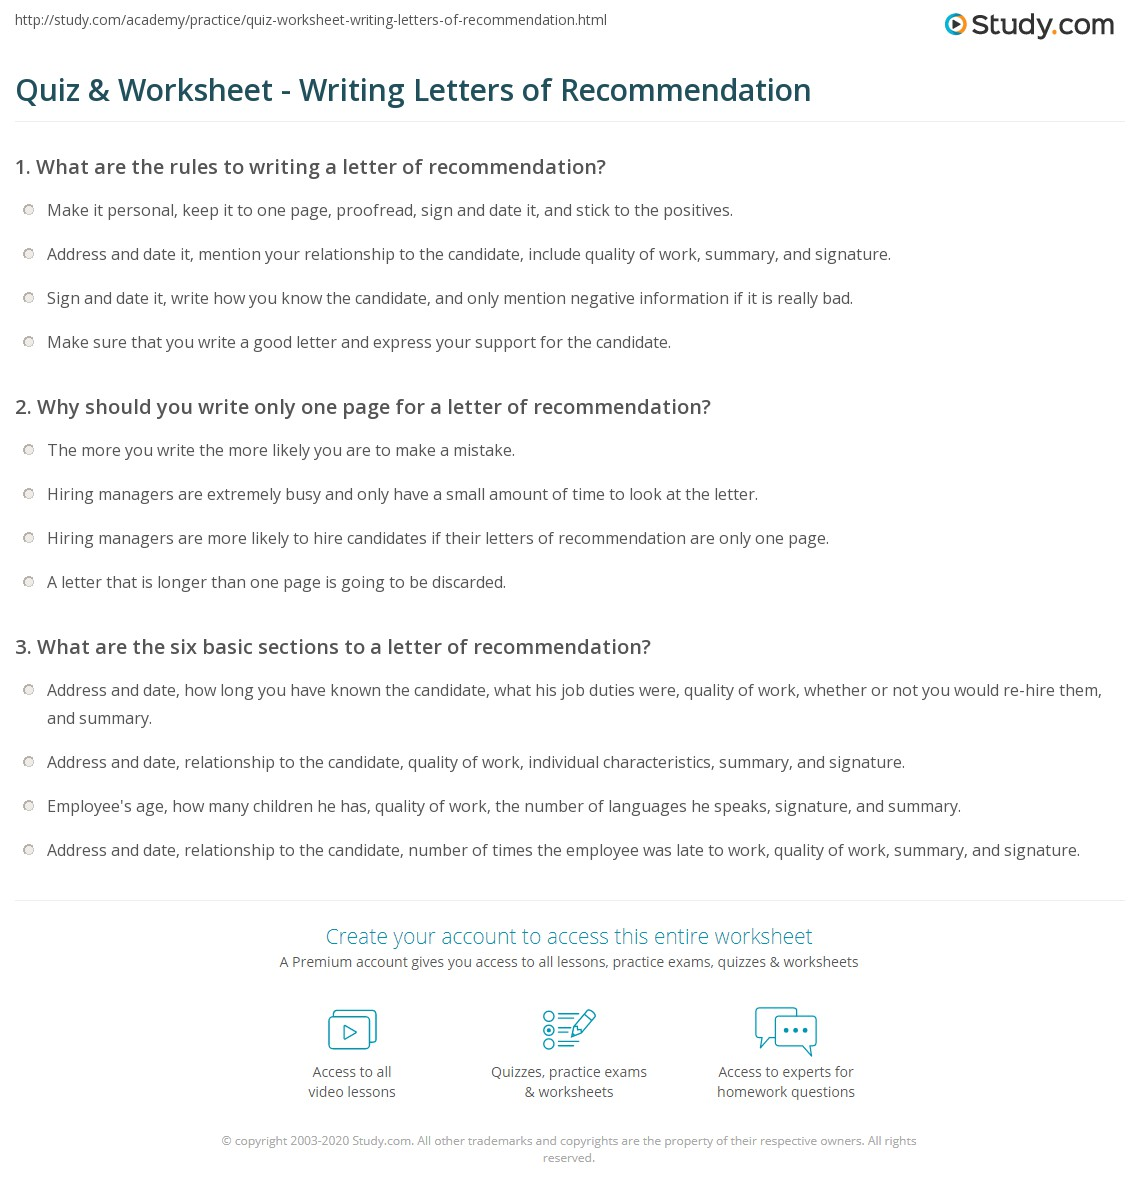 print how to write a letter of recommendation worksheet